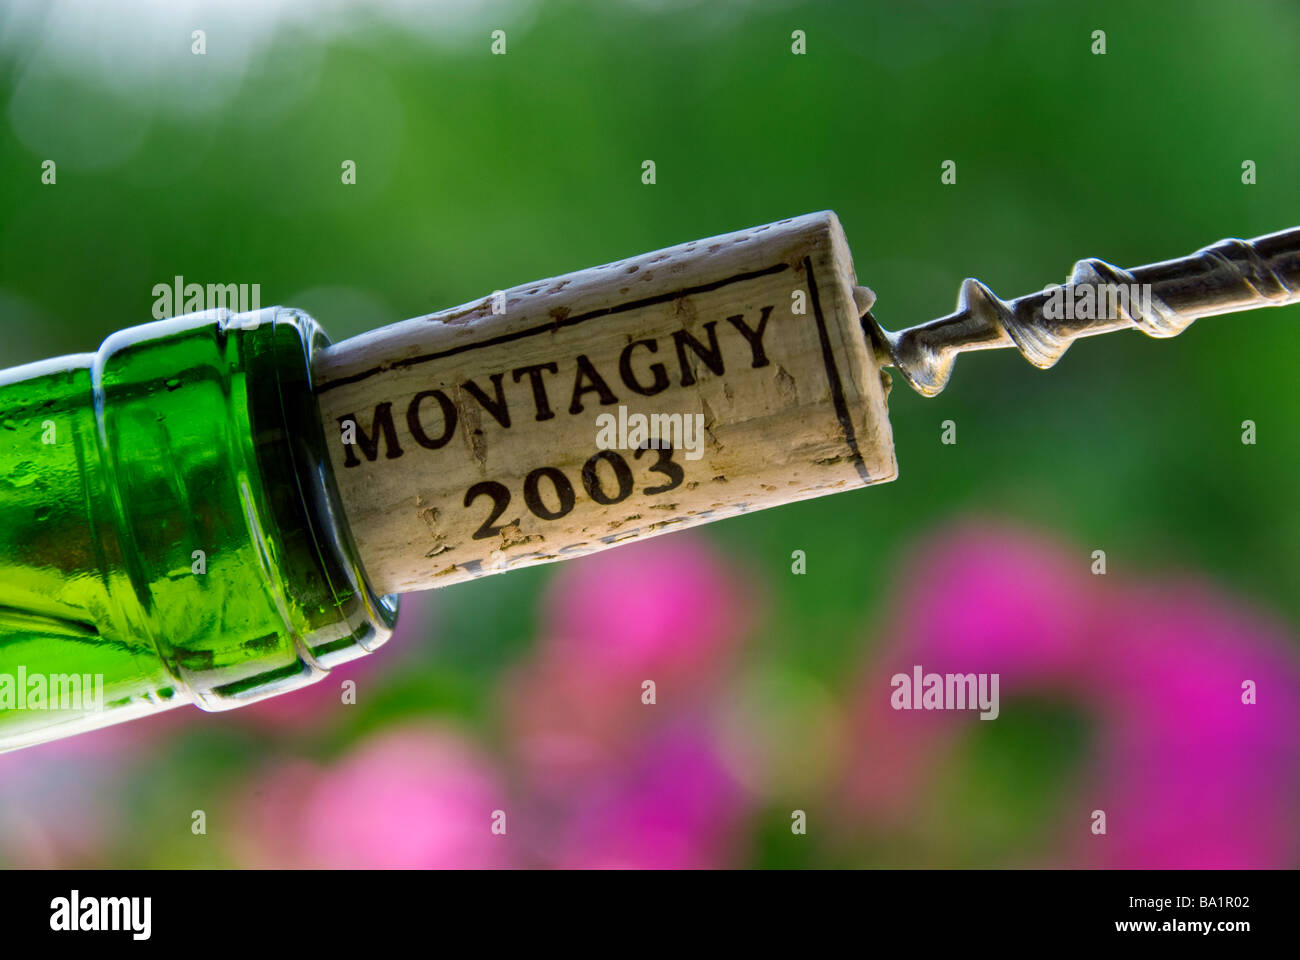 Corkscrew pulling a cork from a bottle of Montagny white burgundy wine 2003 Côte Chalonnaise France - Stock Image